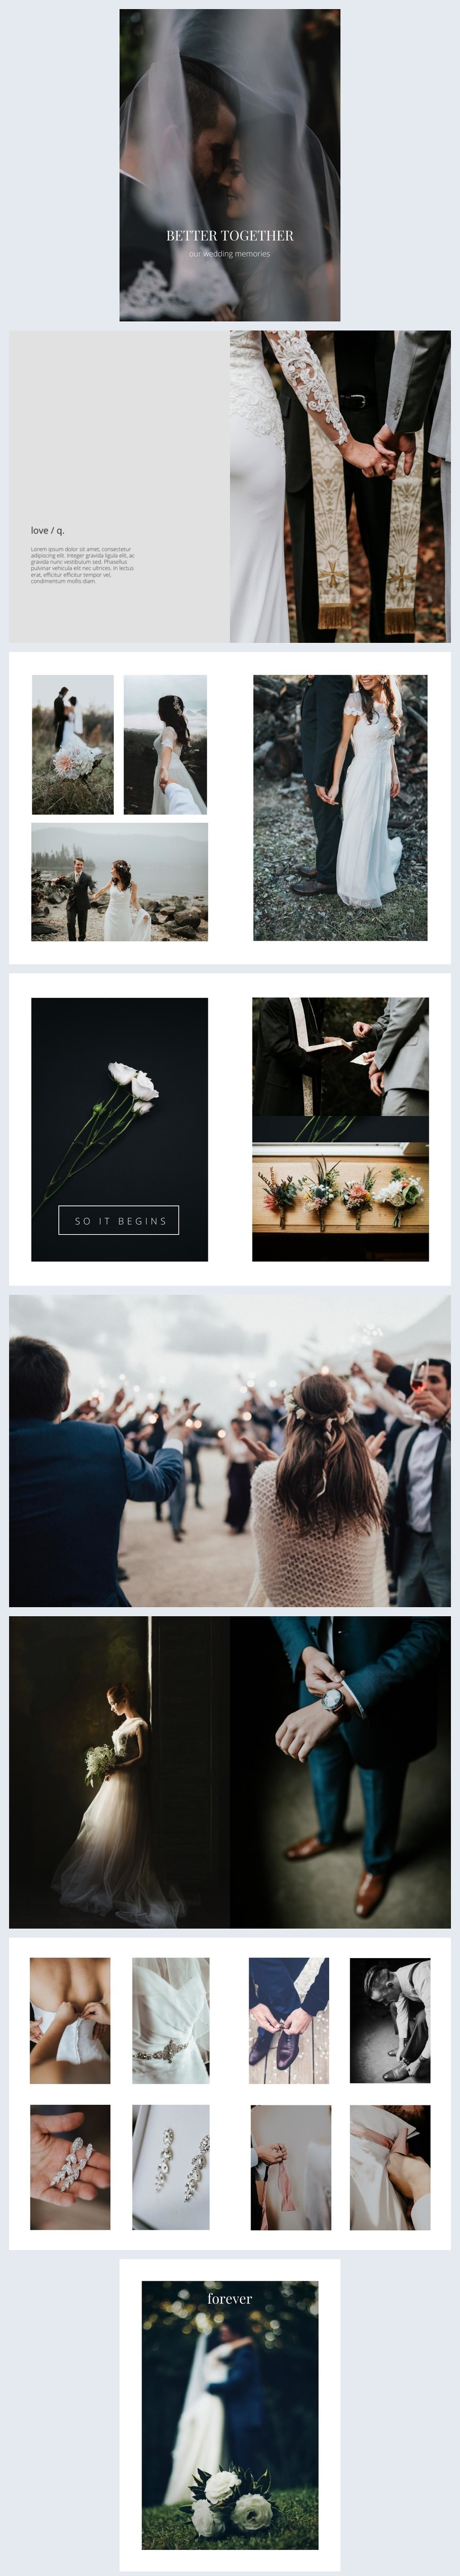 Stunning Wedding Album